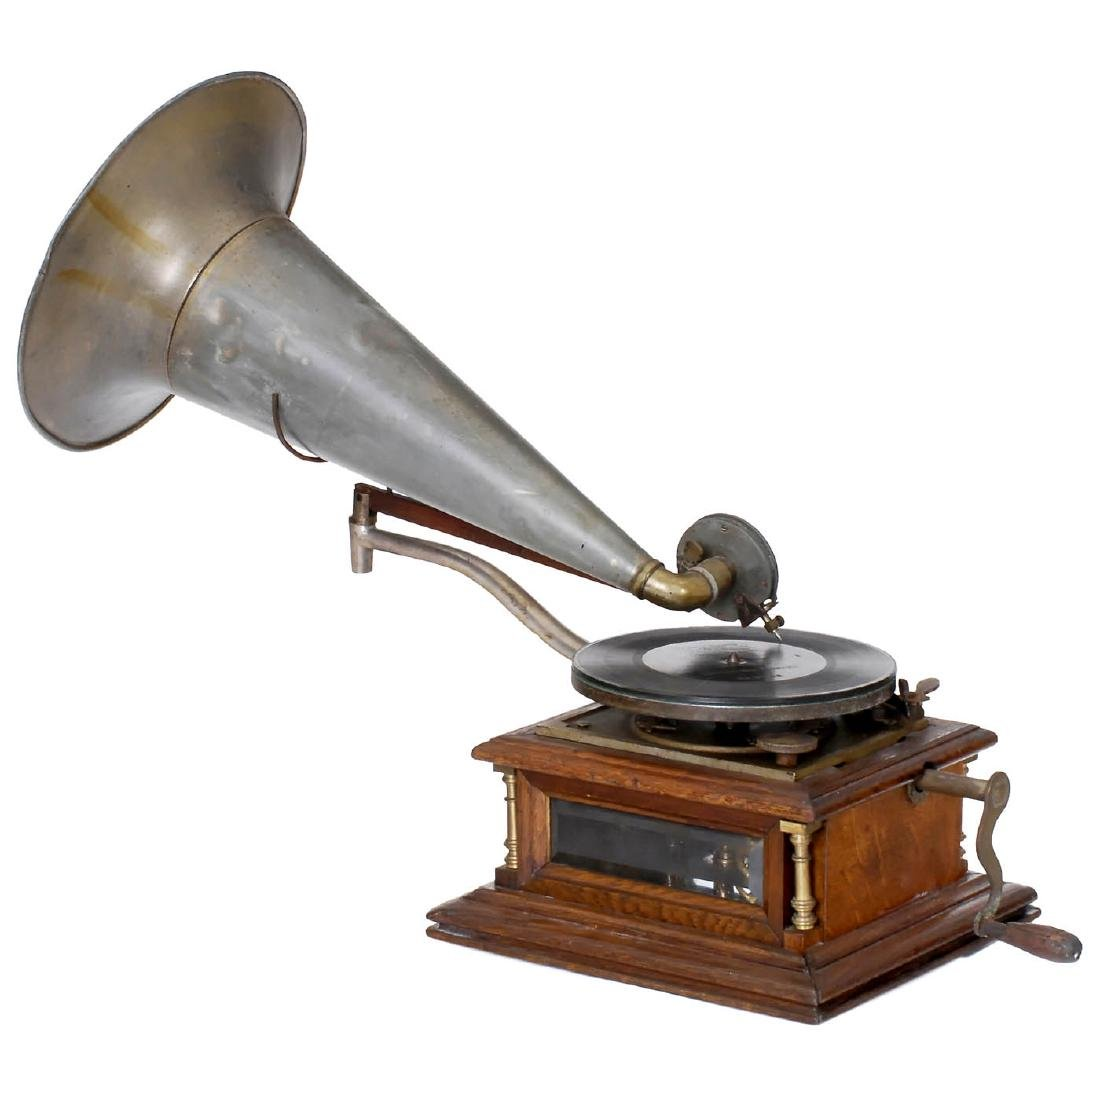 Zonophone Style A Gramophone, c. 1900 - 2